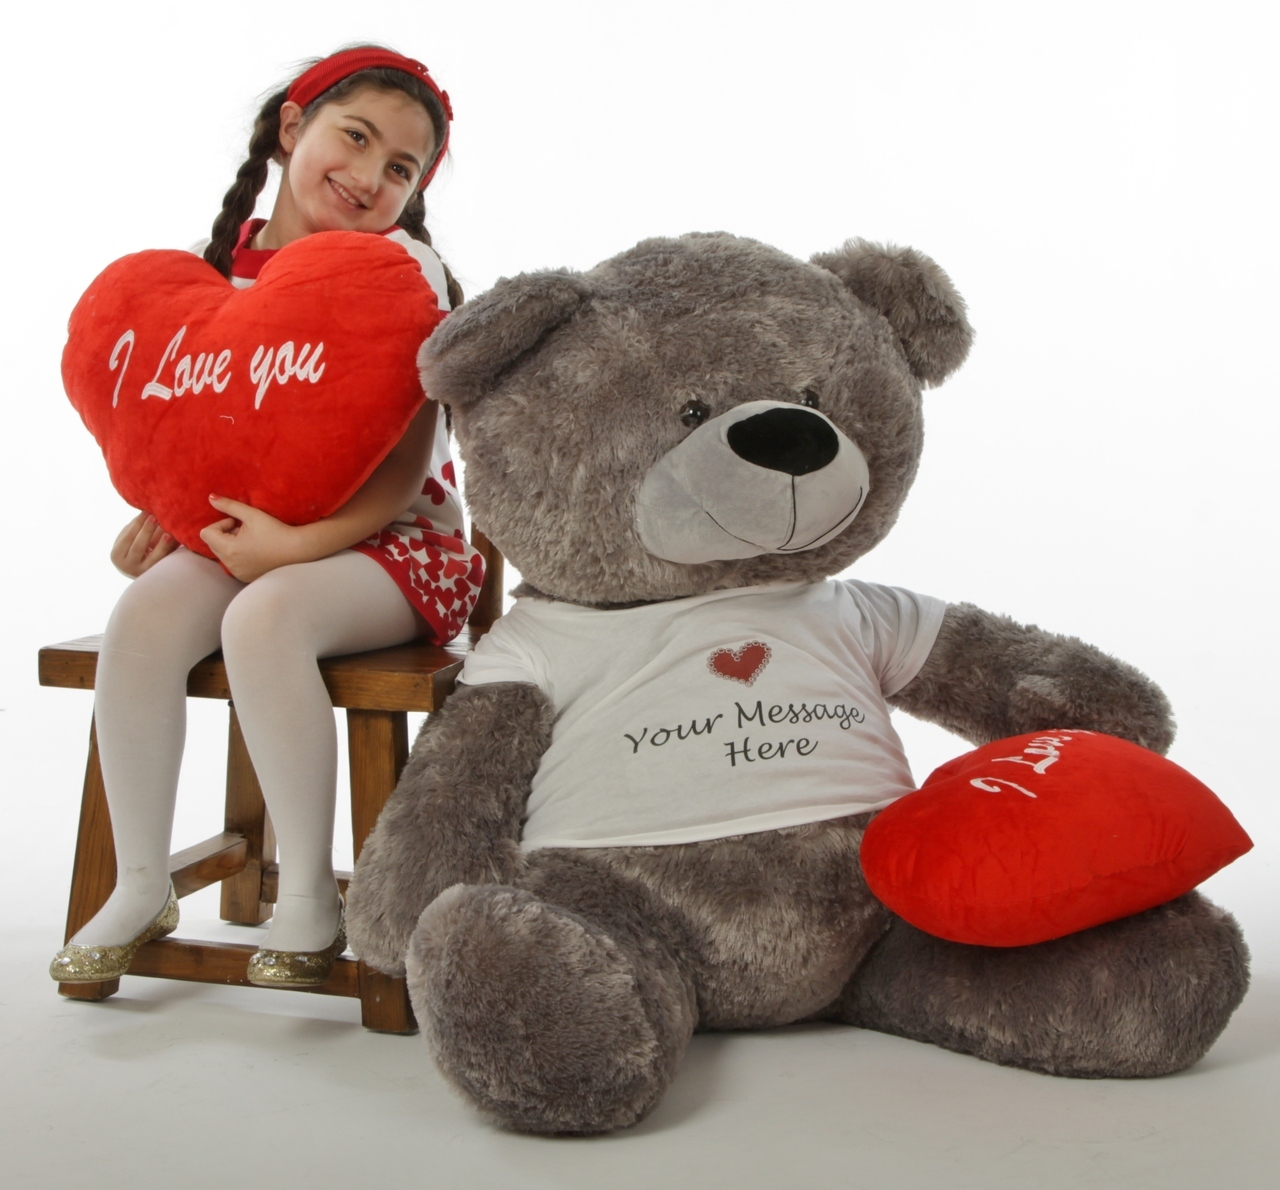 Perfectly Personalized... Giant Teddy Bears With Your 3 5 Word Message  Printed On Their Shirts